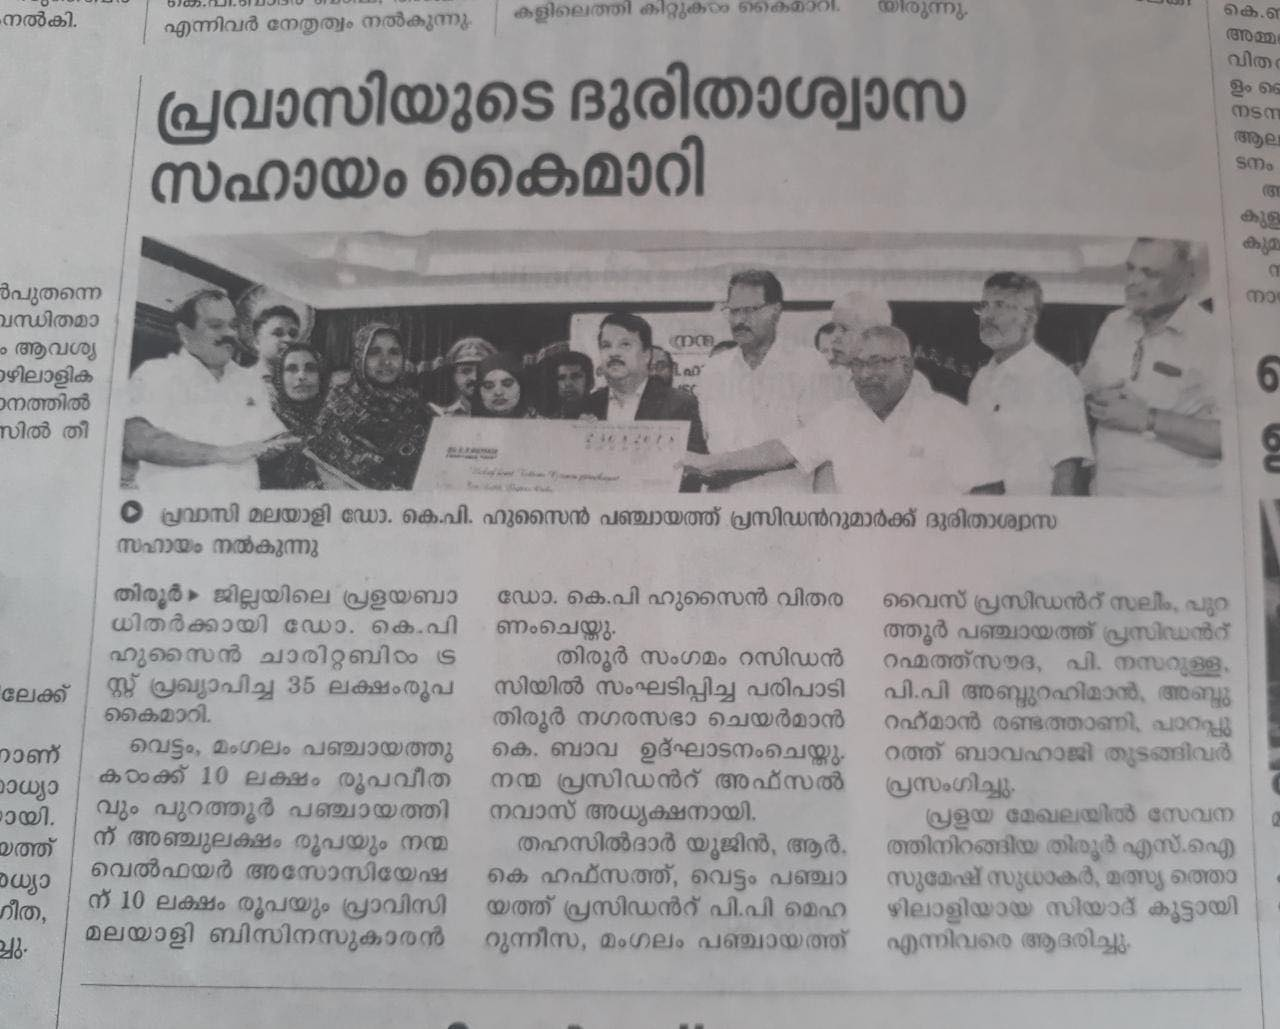 Dr.K.P Hussain Charitable Trust donates INR 35 lakhs to the Kerala Flood Relief.